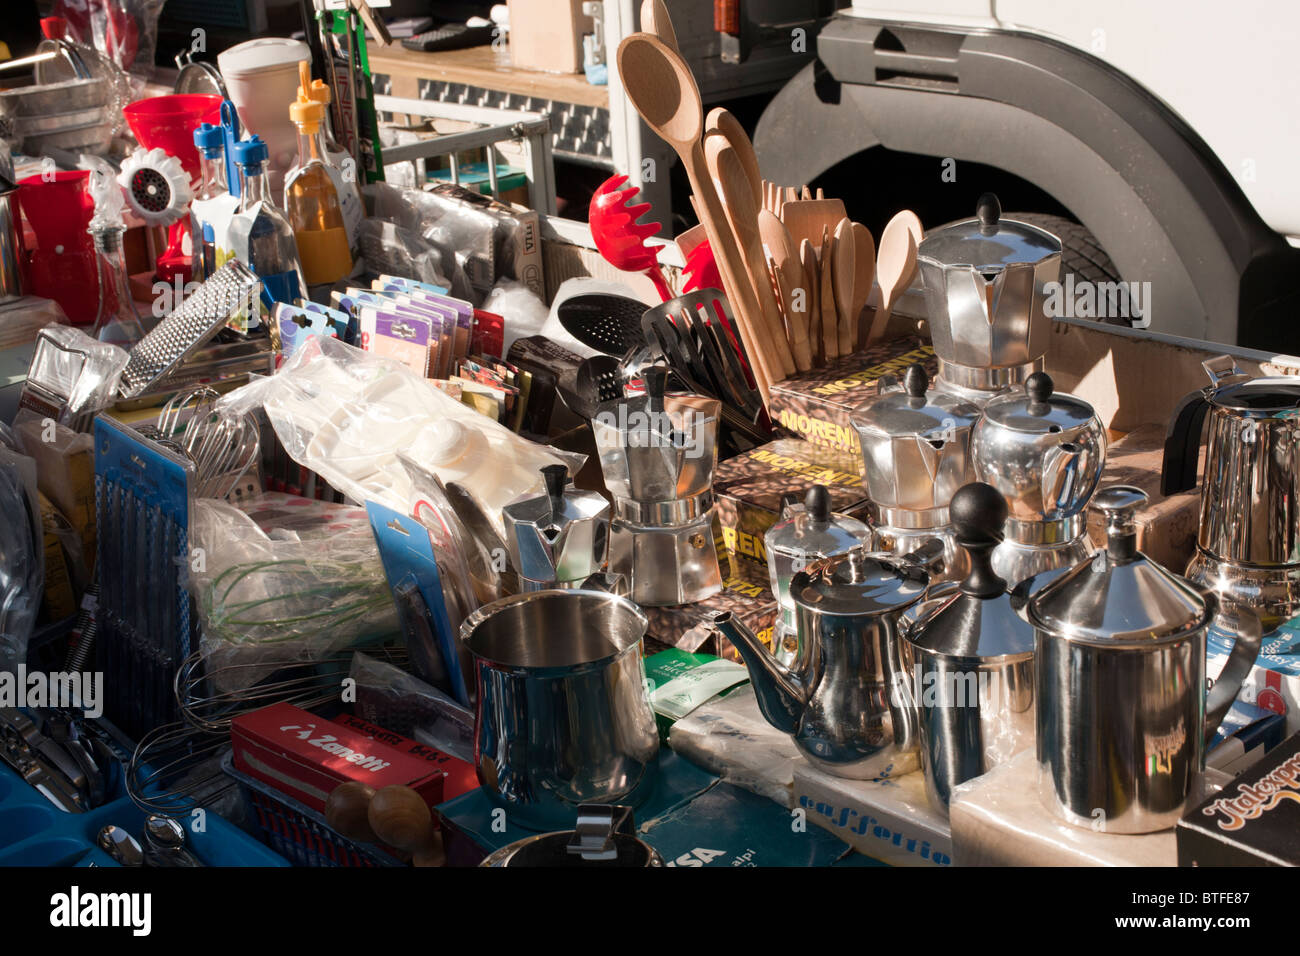 kitchen items in the market, Italy - Stock Image